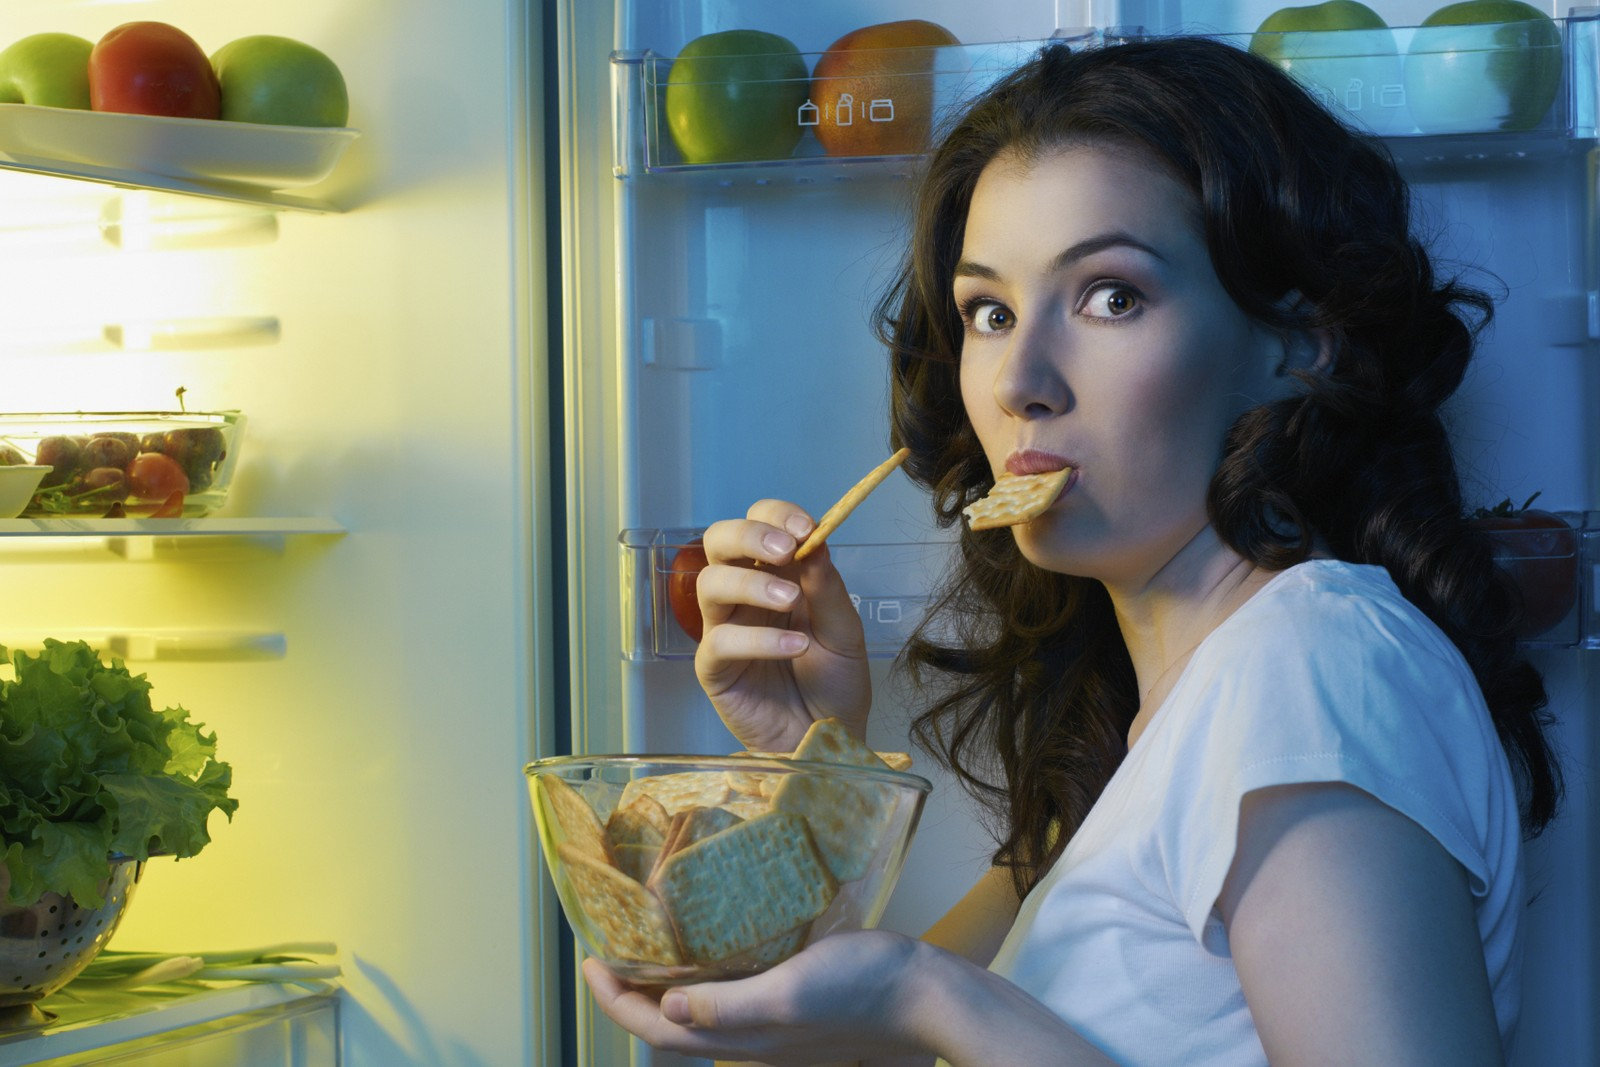 A girl with open refrigerator, eating in night